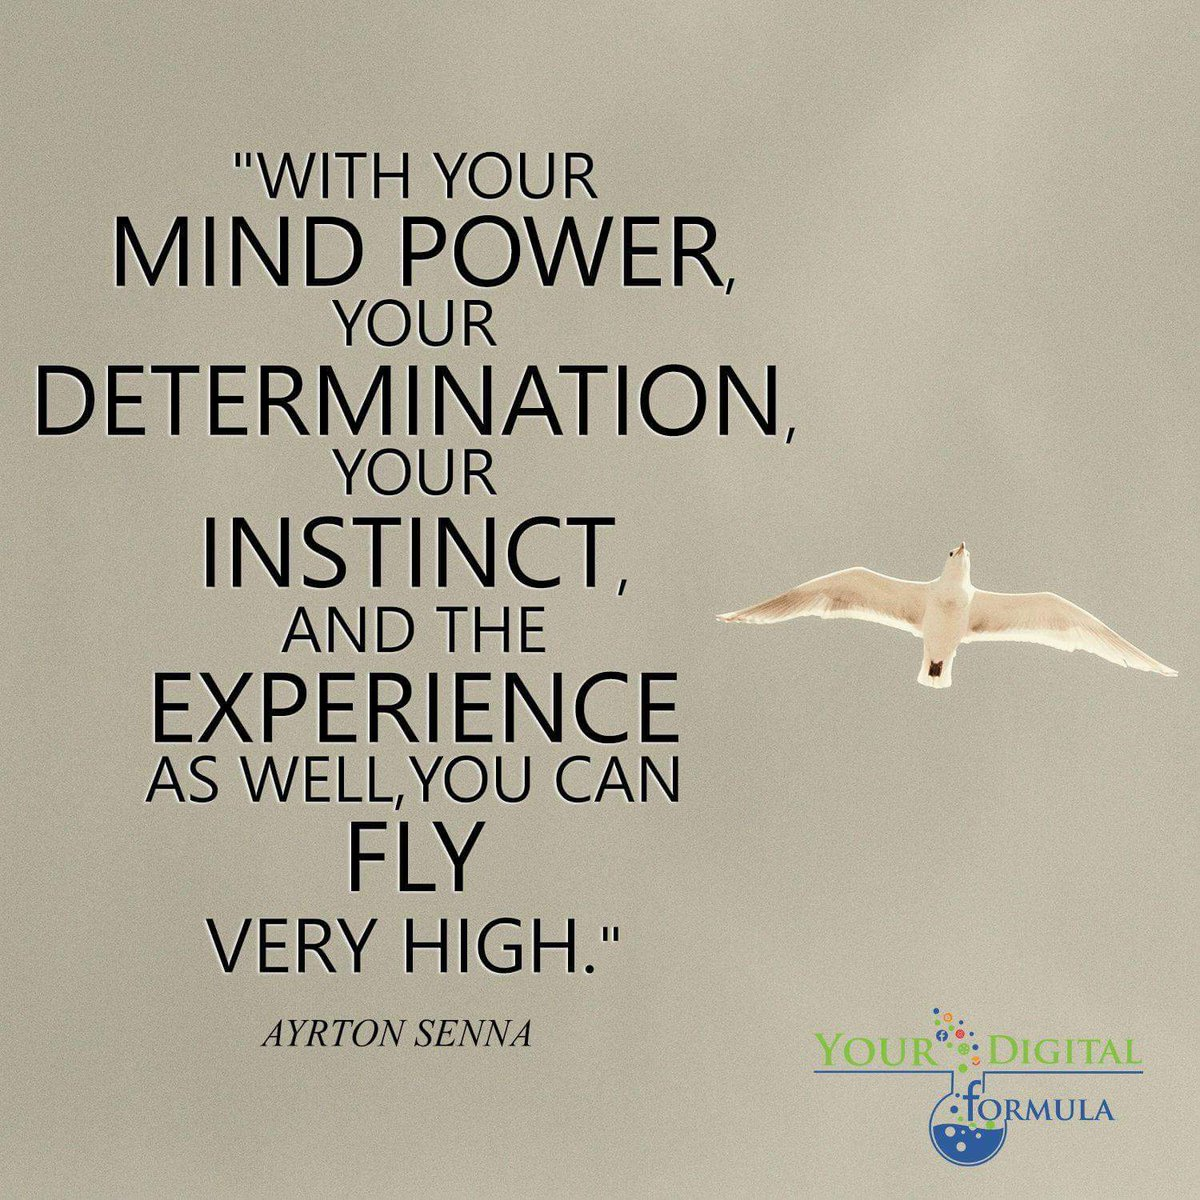 Benny Christian On Twitter With Your Mind Power Your